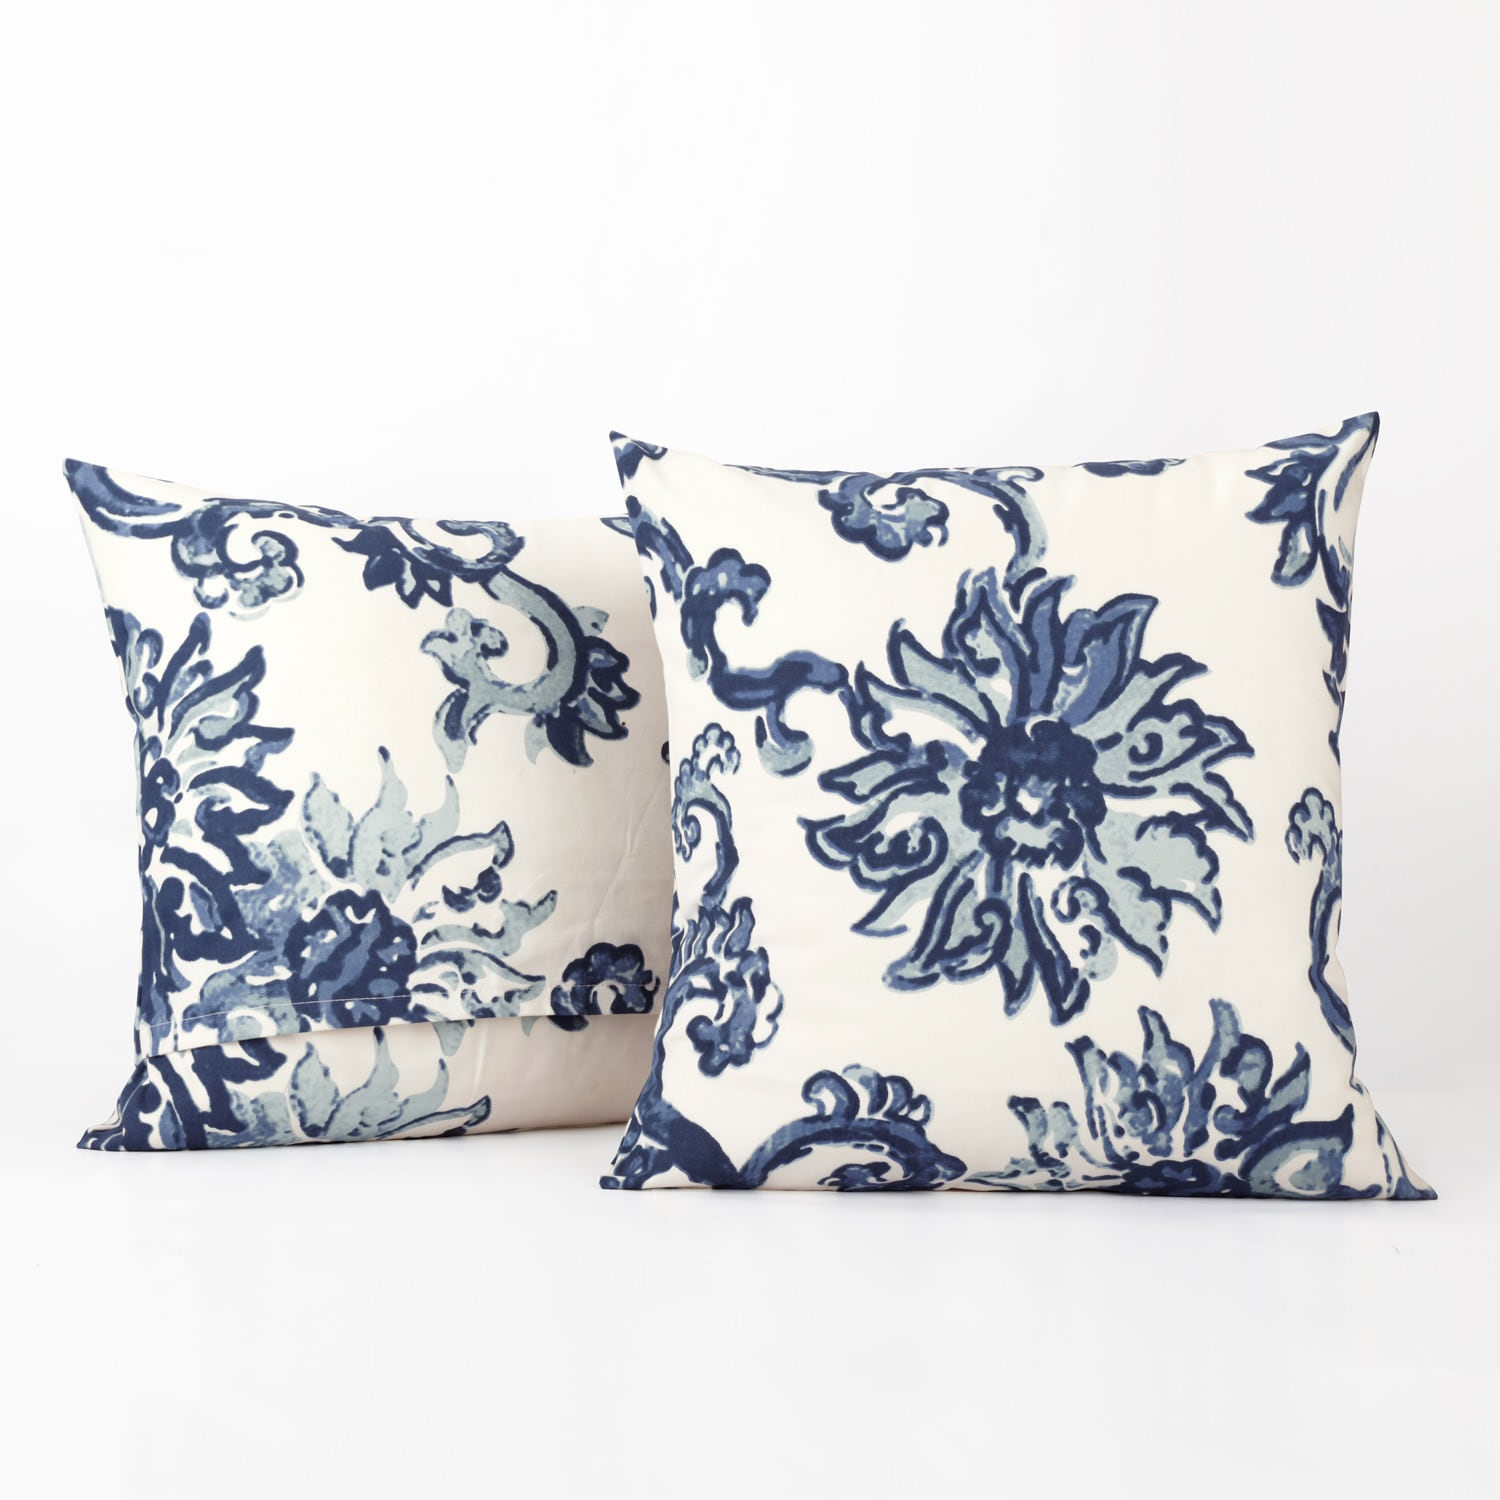 Indonesian Blue Printed Cotton Cushion Covers - PAIR